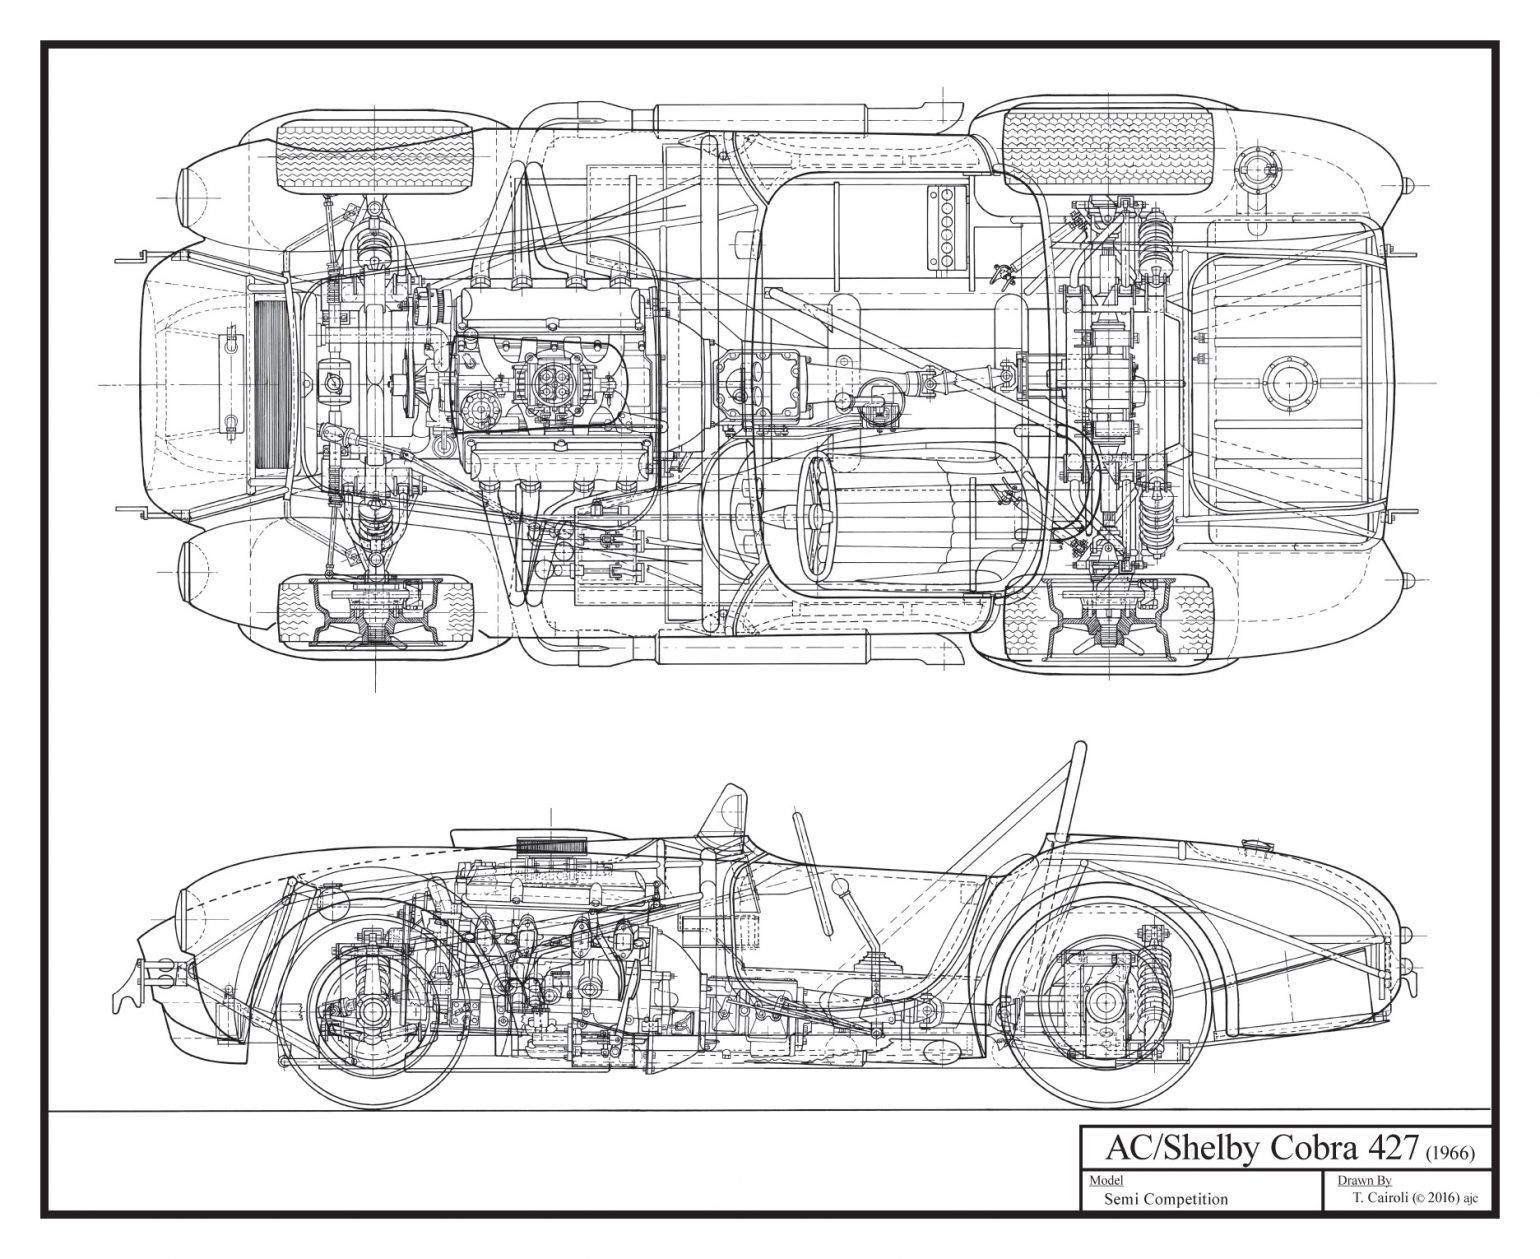 Tony Cairoli Has Completed His Shelby Cobra 427 Schematic All Hand Drawn